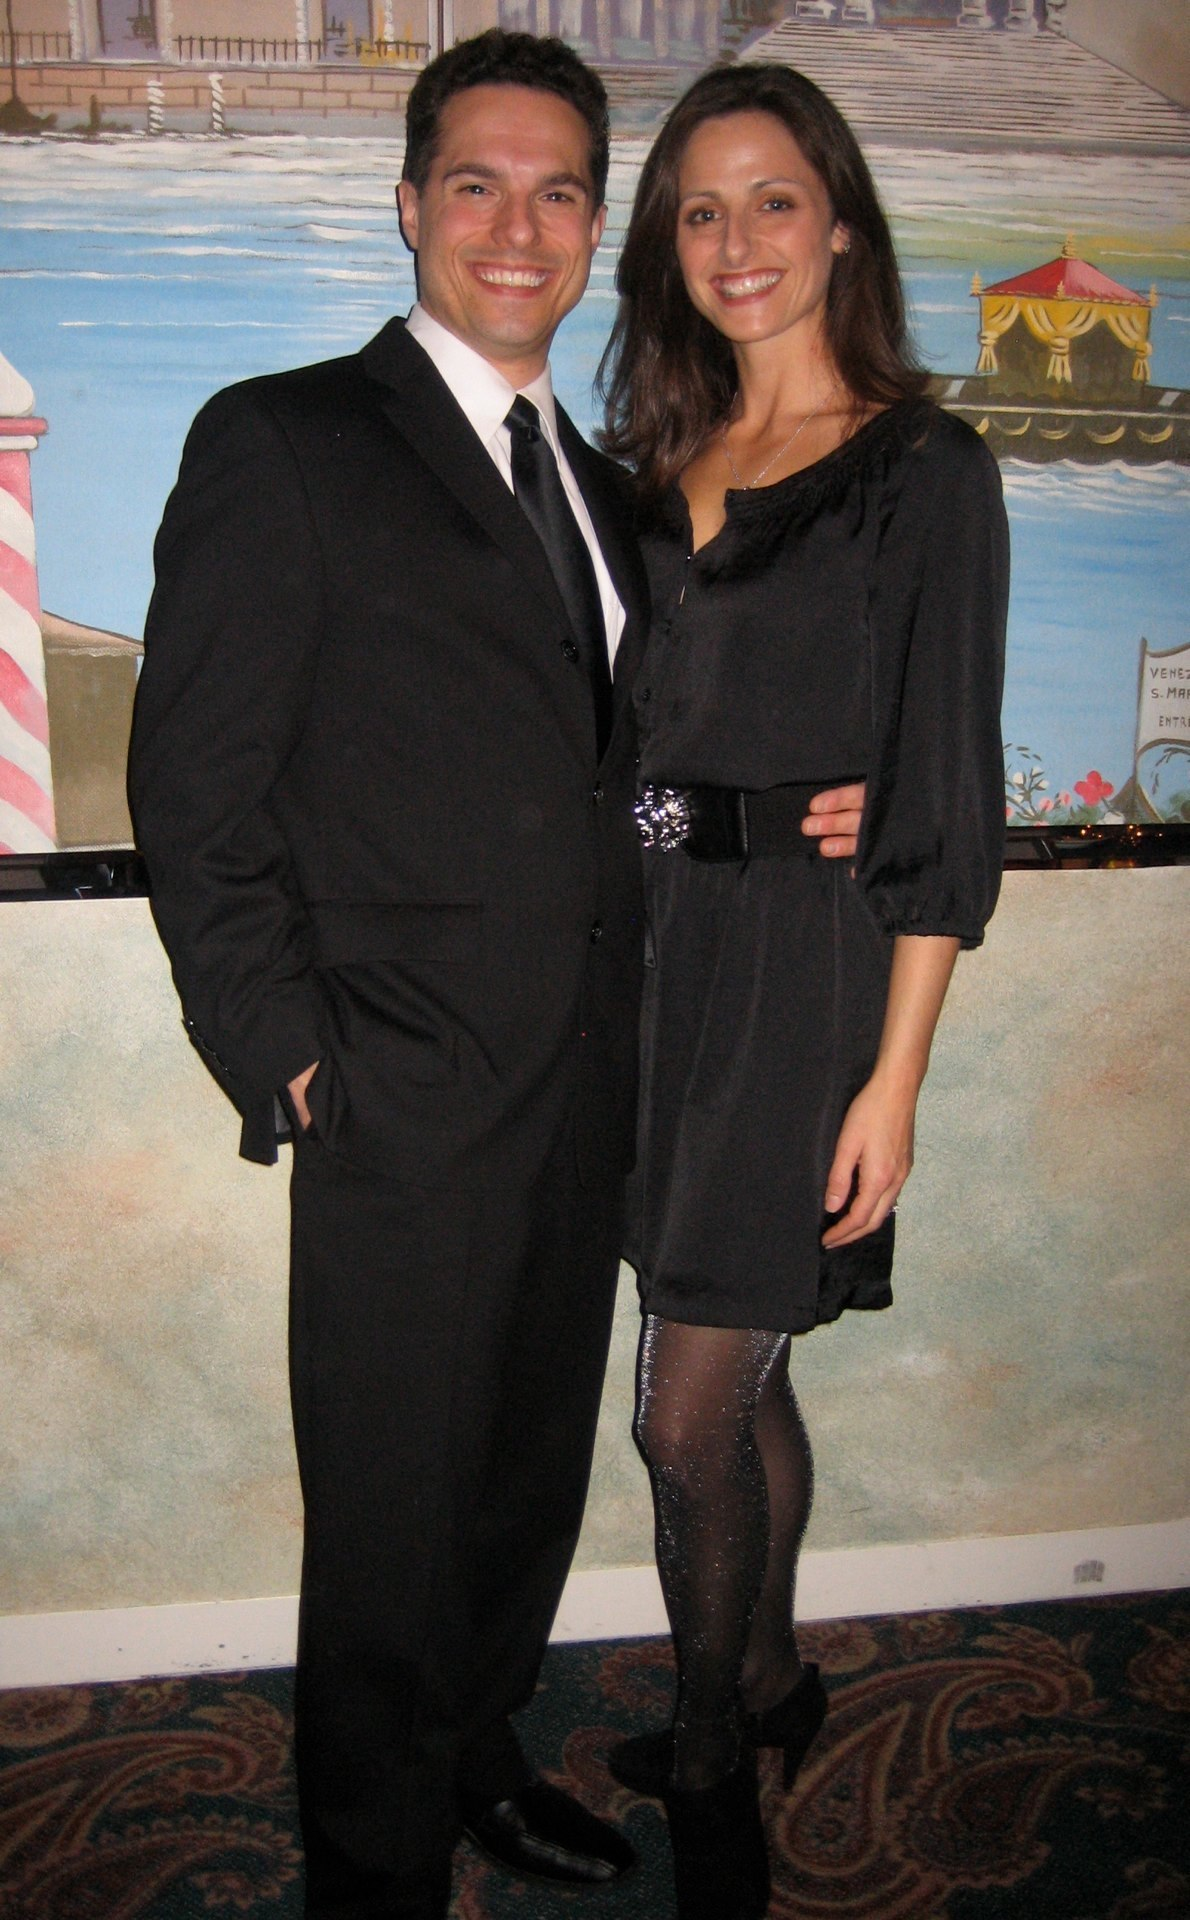 JMC with his wife, Rachel at the David Awards.